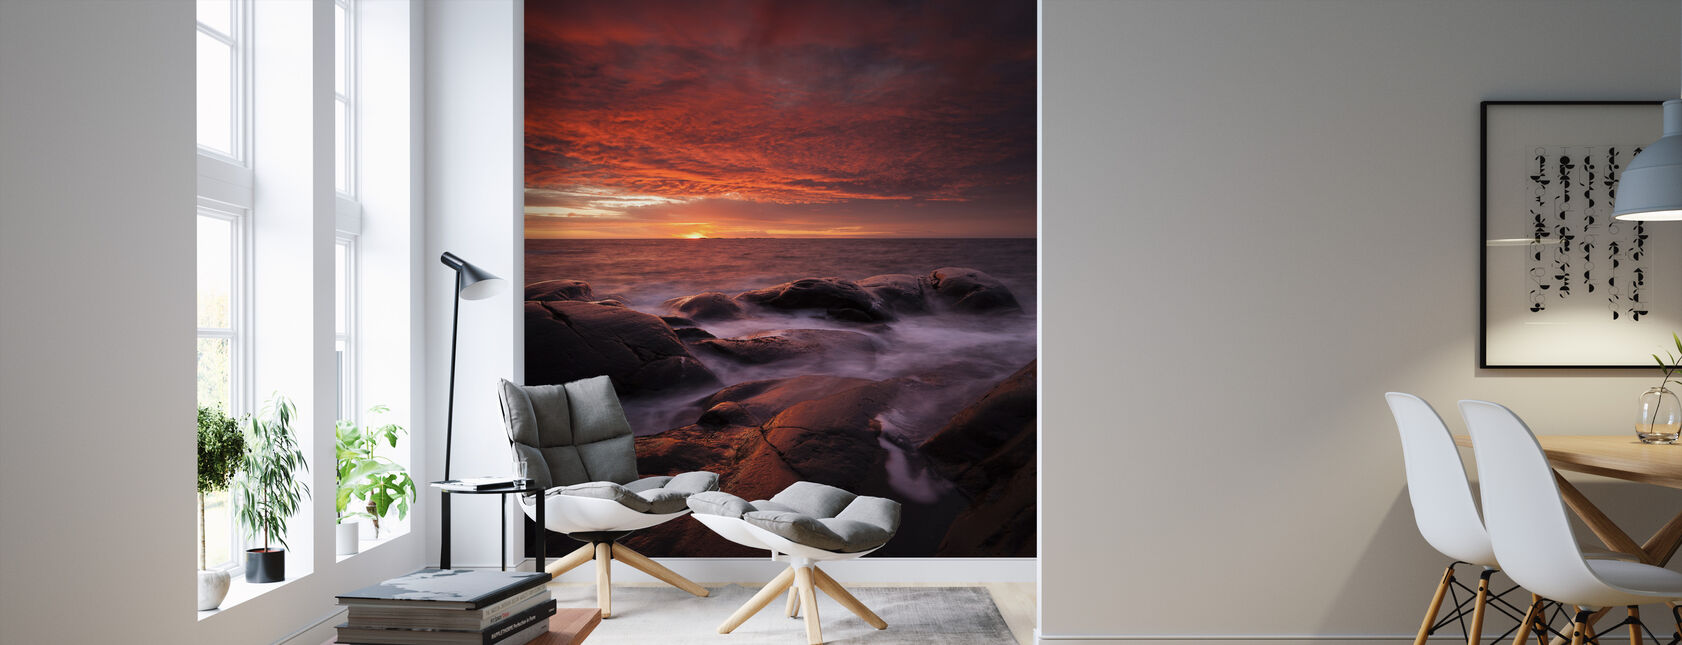 Submerged in the Sun - Wallpaper - Living Room